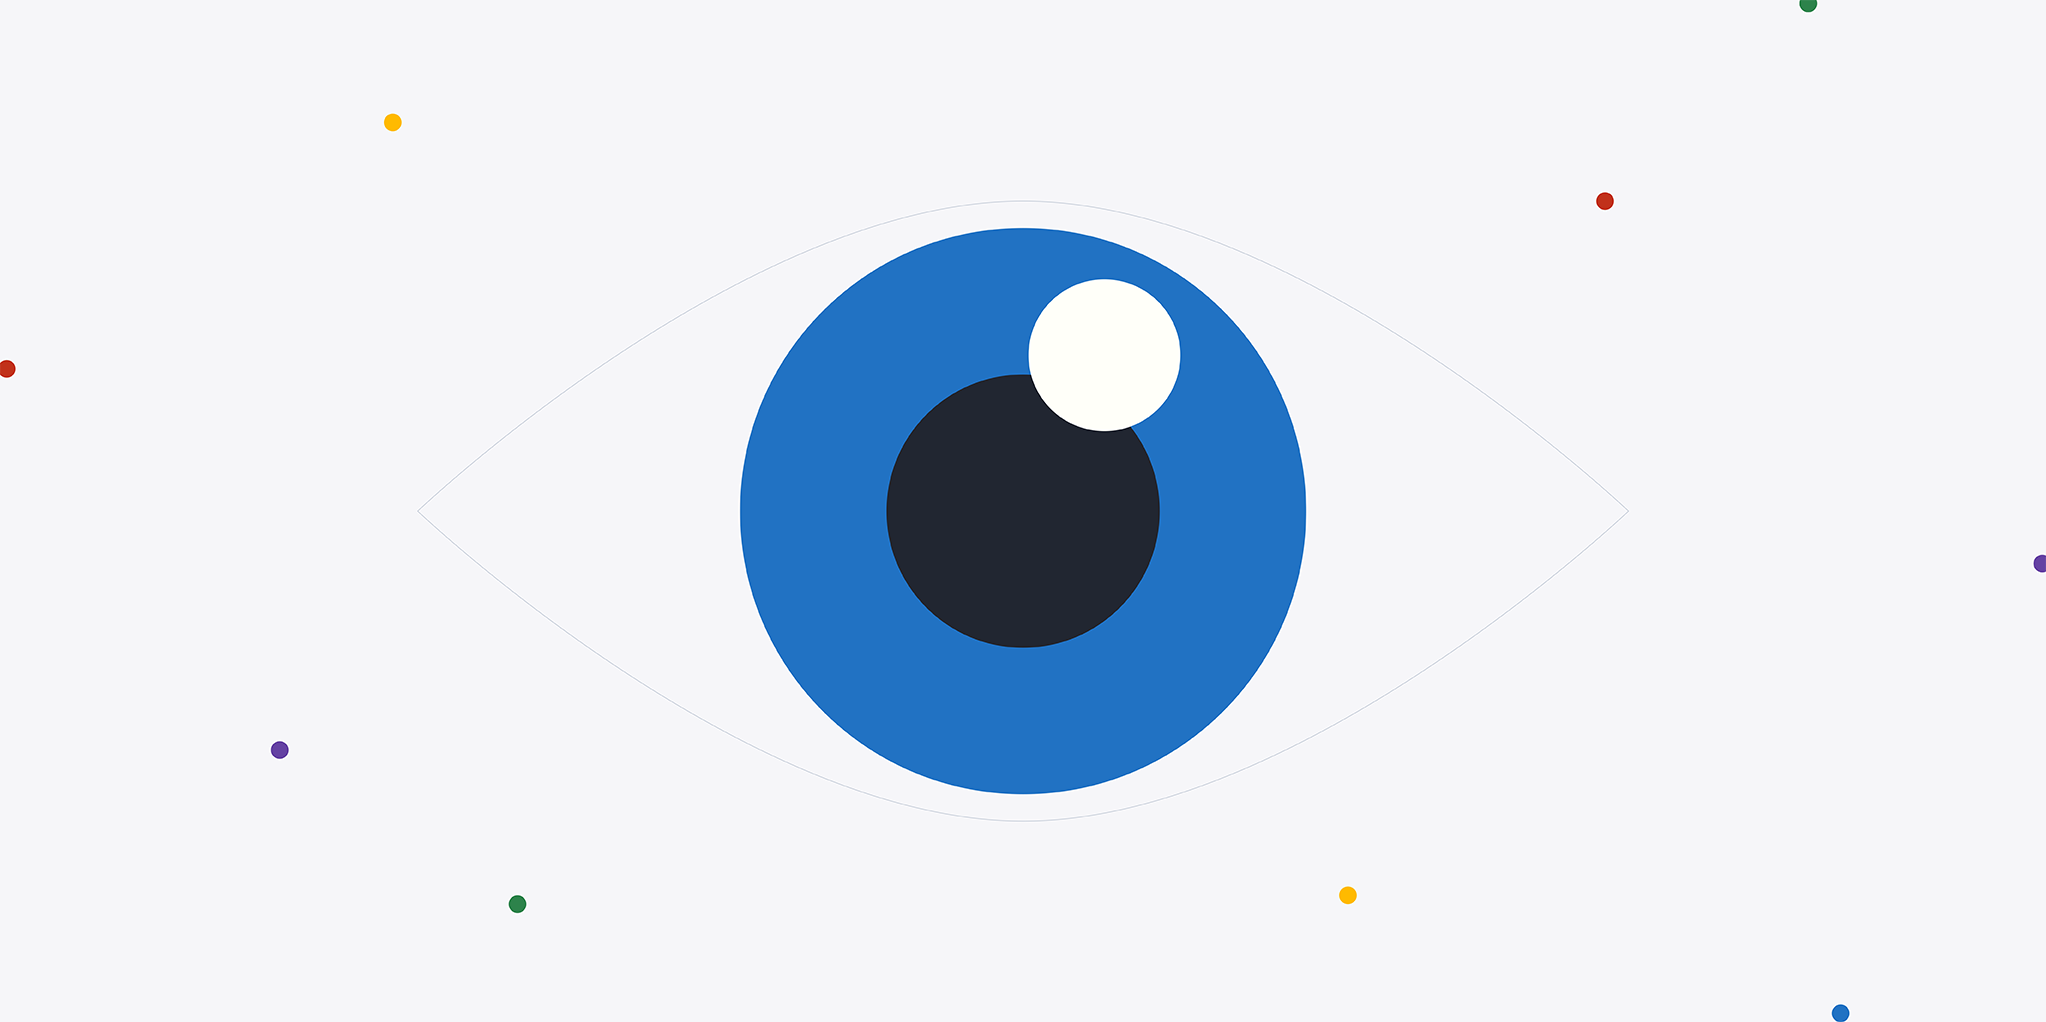 Blue eye with a black pupil on a white background surrounded by small, colorful dots.